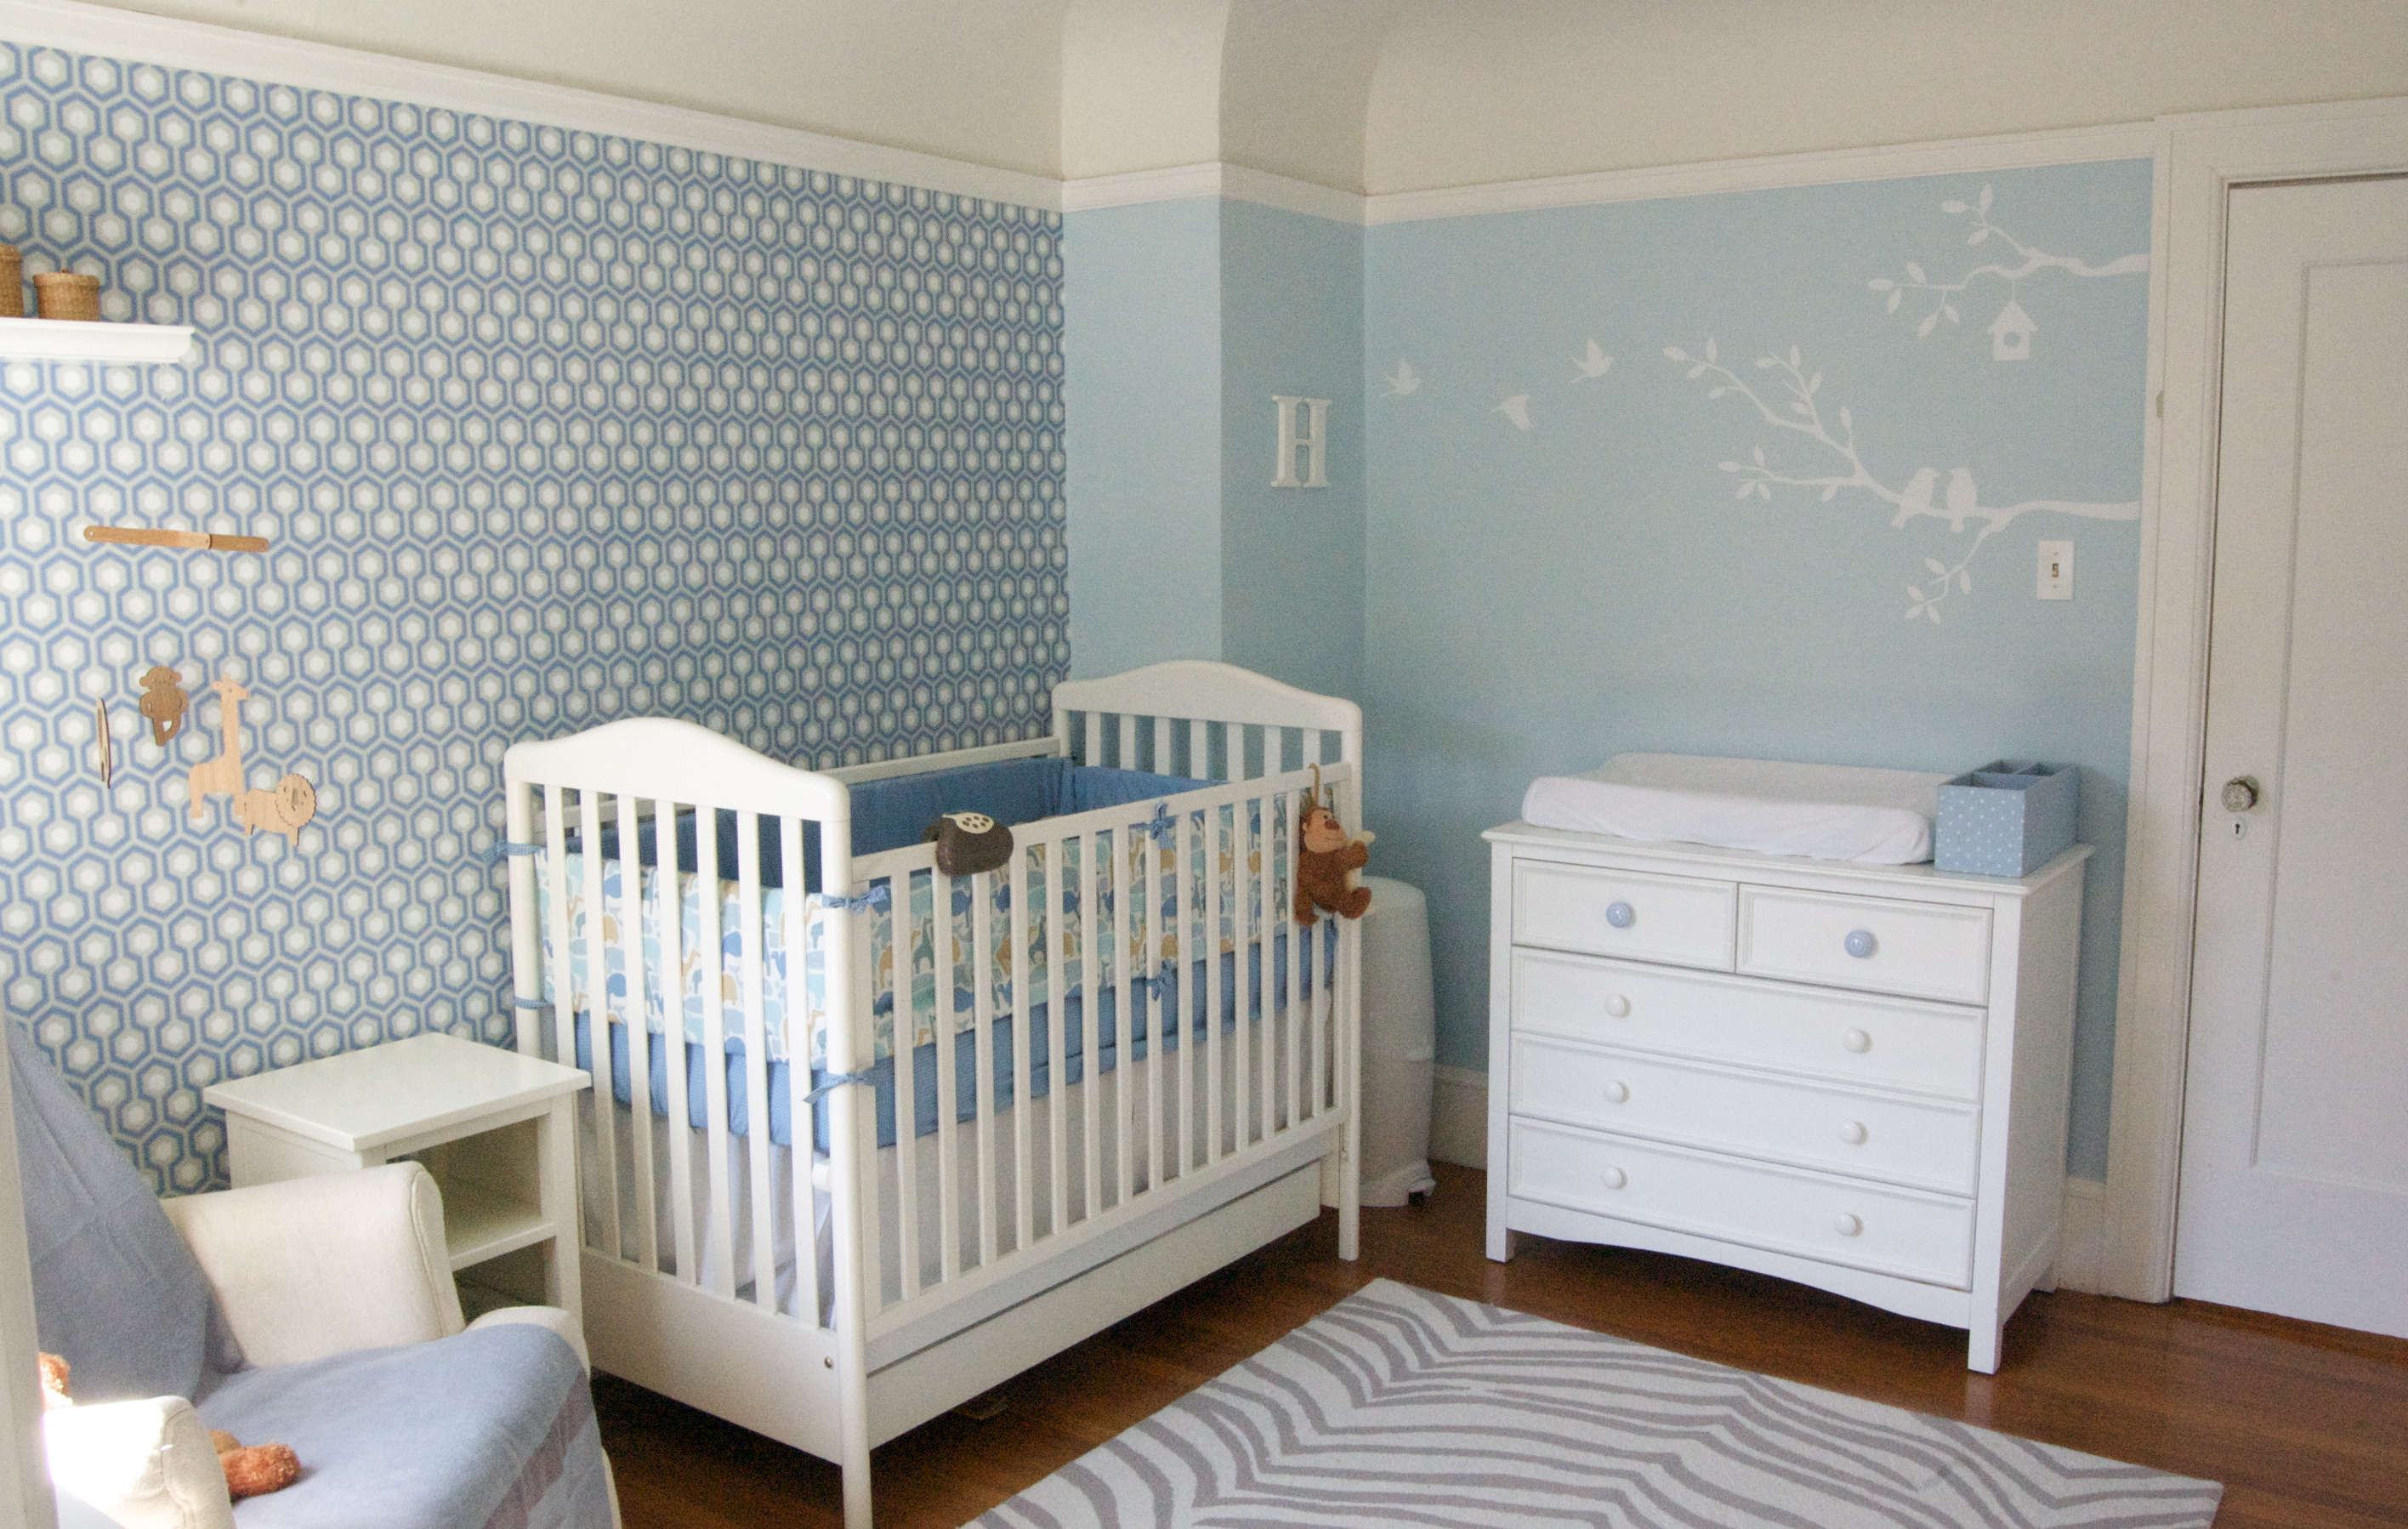 1000 images about baby room ideas on pinterest for Baby boy s room decoration